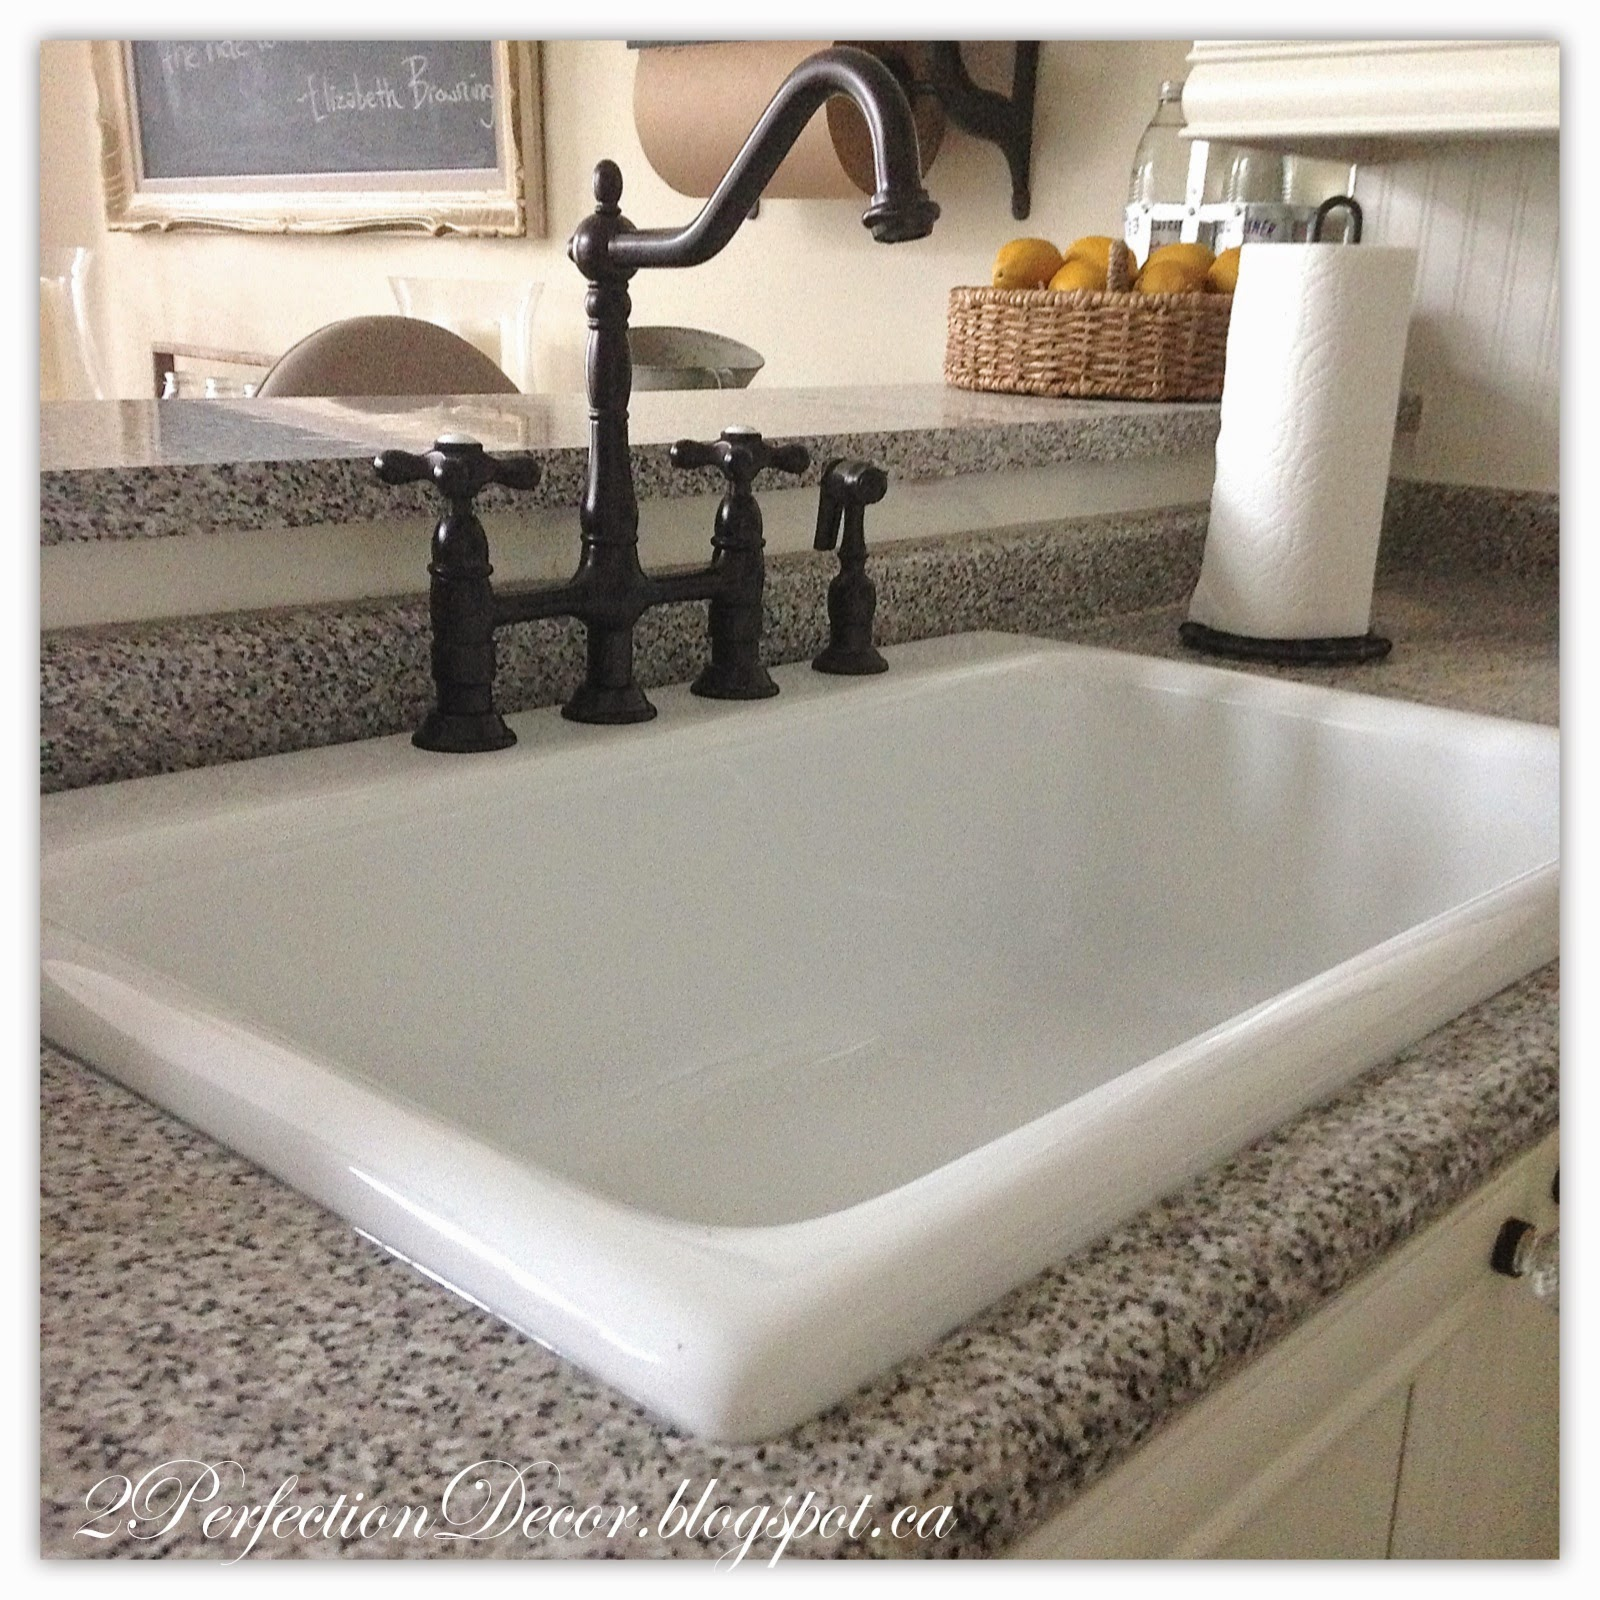 2Perfection Decor New Farmhouse Kitchen Sink & Faucet